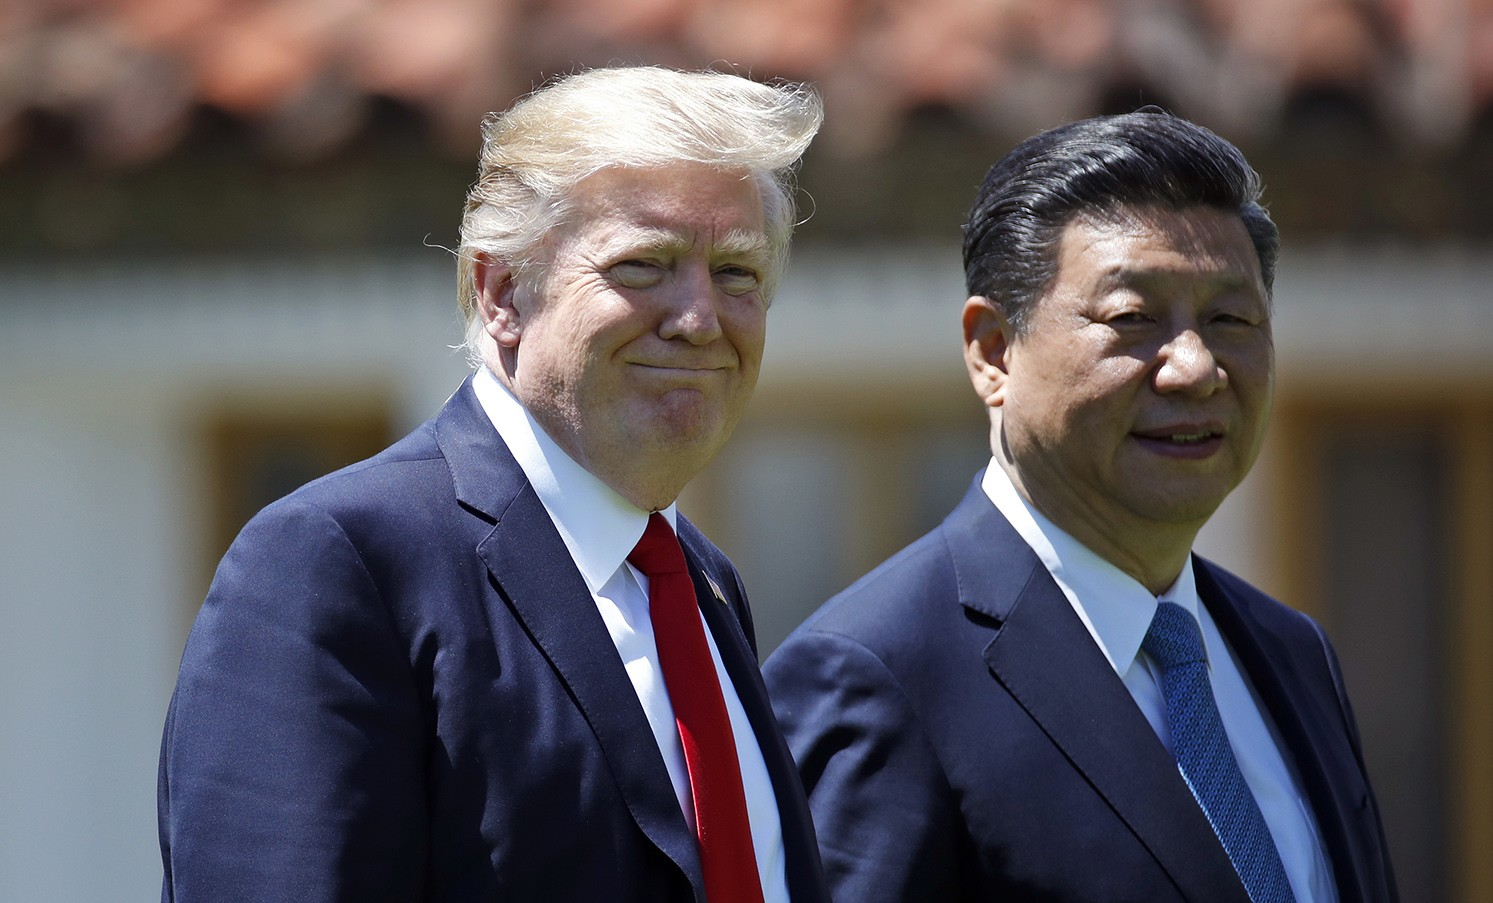 President Trump meets with Chinese Premier Xi Jinping at his Home in Mar-a-Lago, Florida in April of 2017  Photo:  Alex Brandon/AP Photo